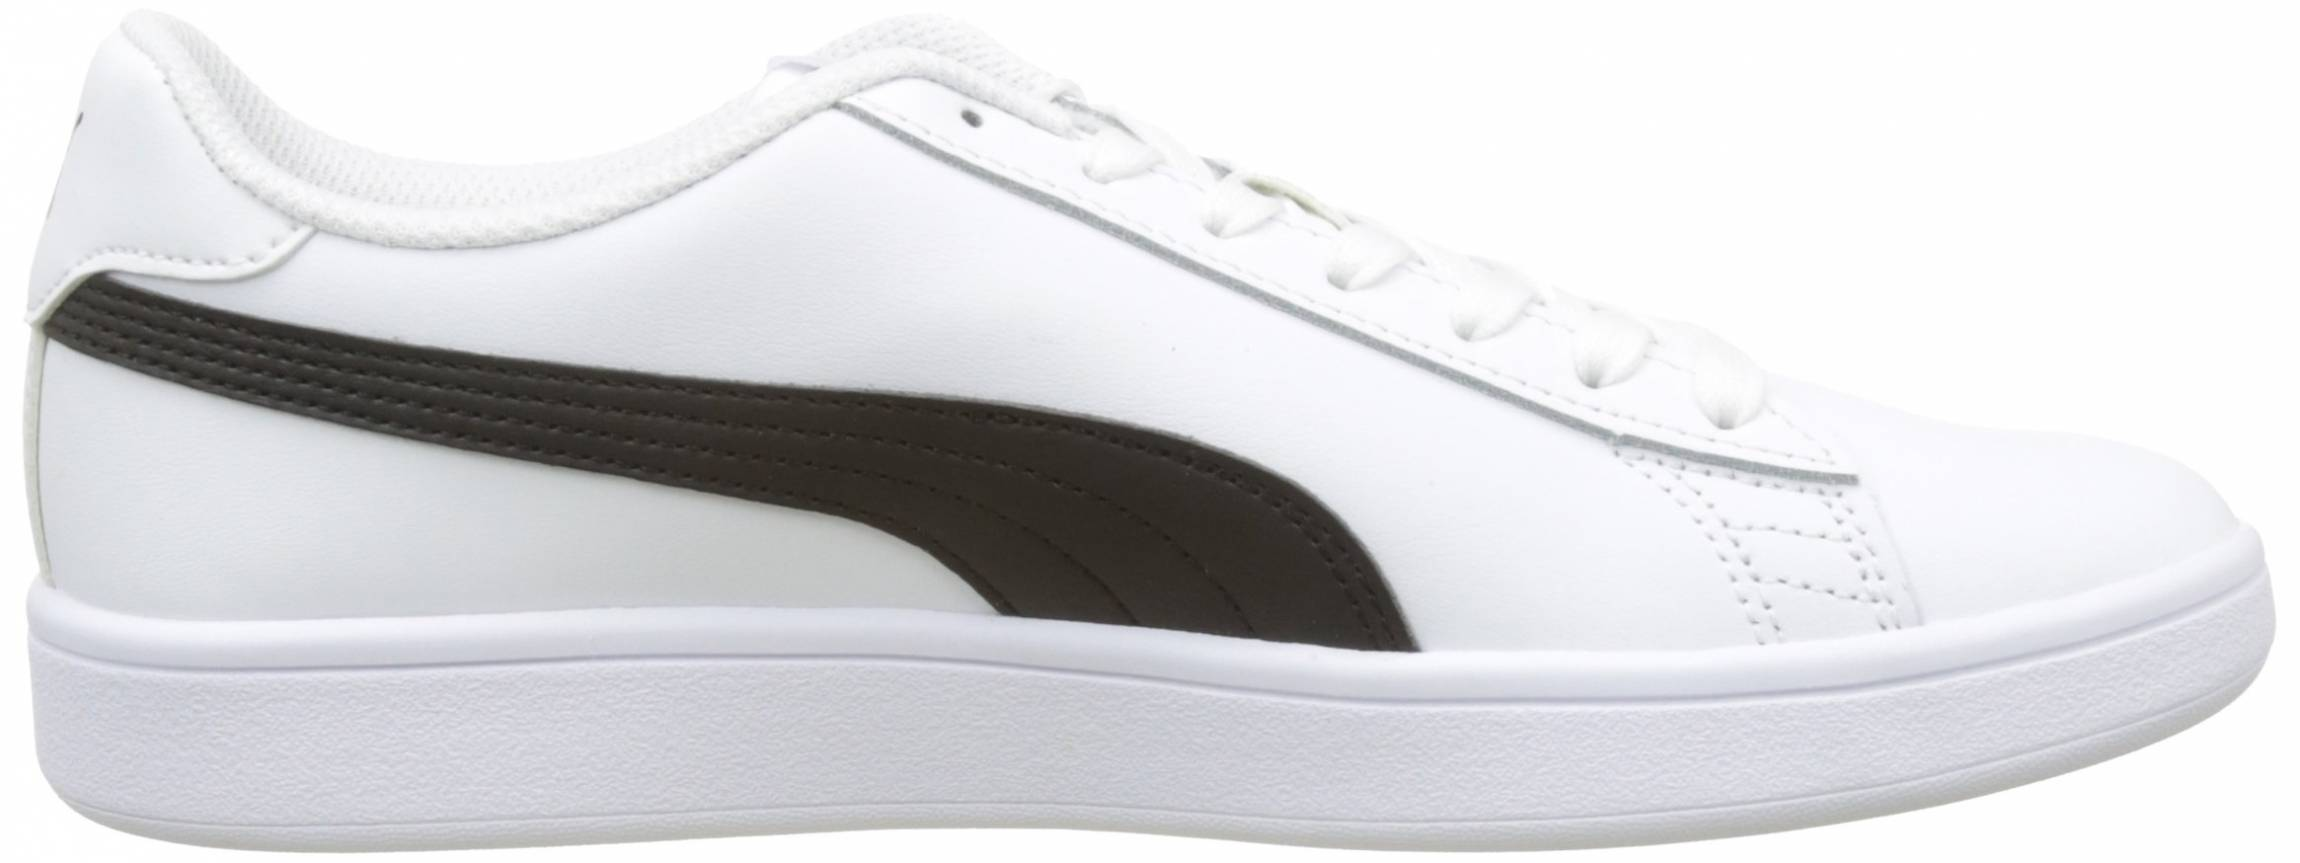 Puma Smash v2 Leather sneakers in 4 colors (only $44) | RunRepeat